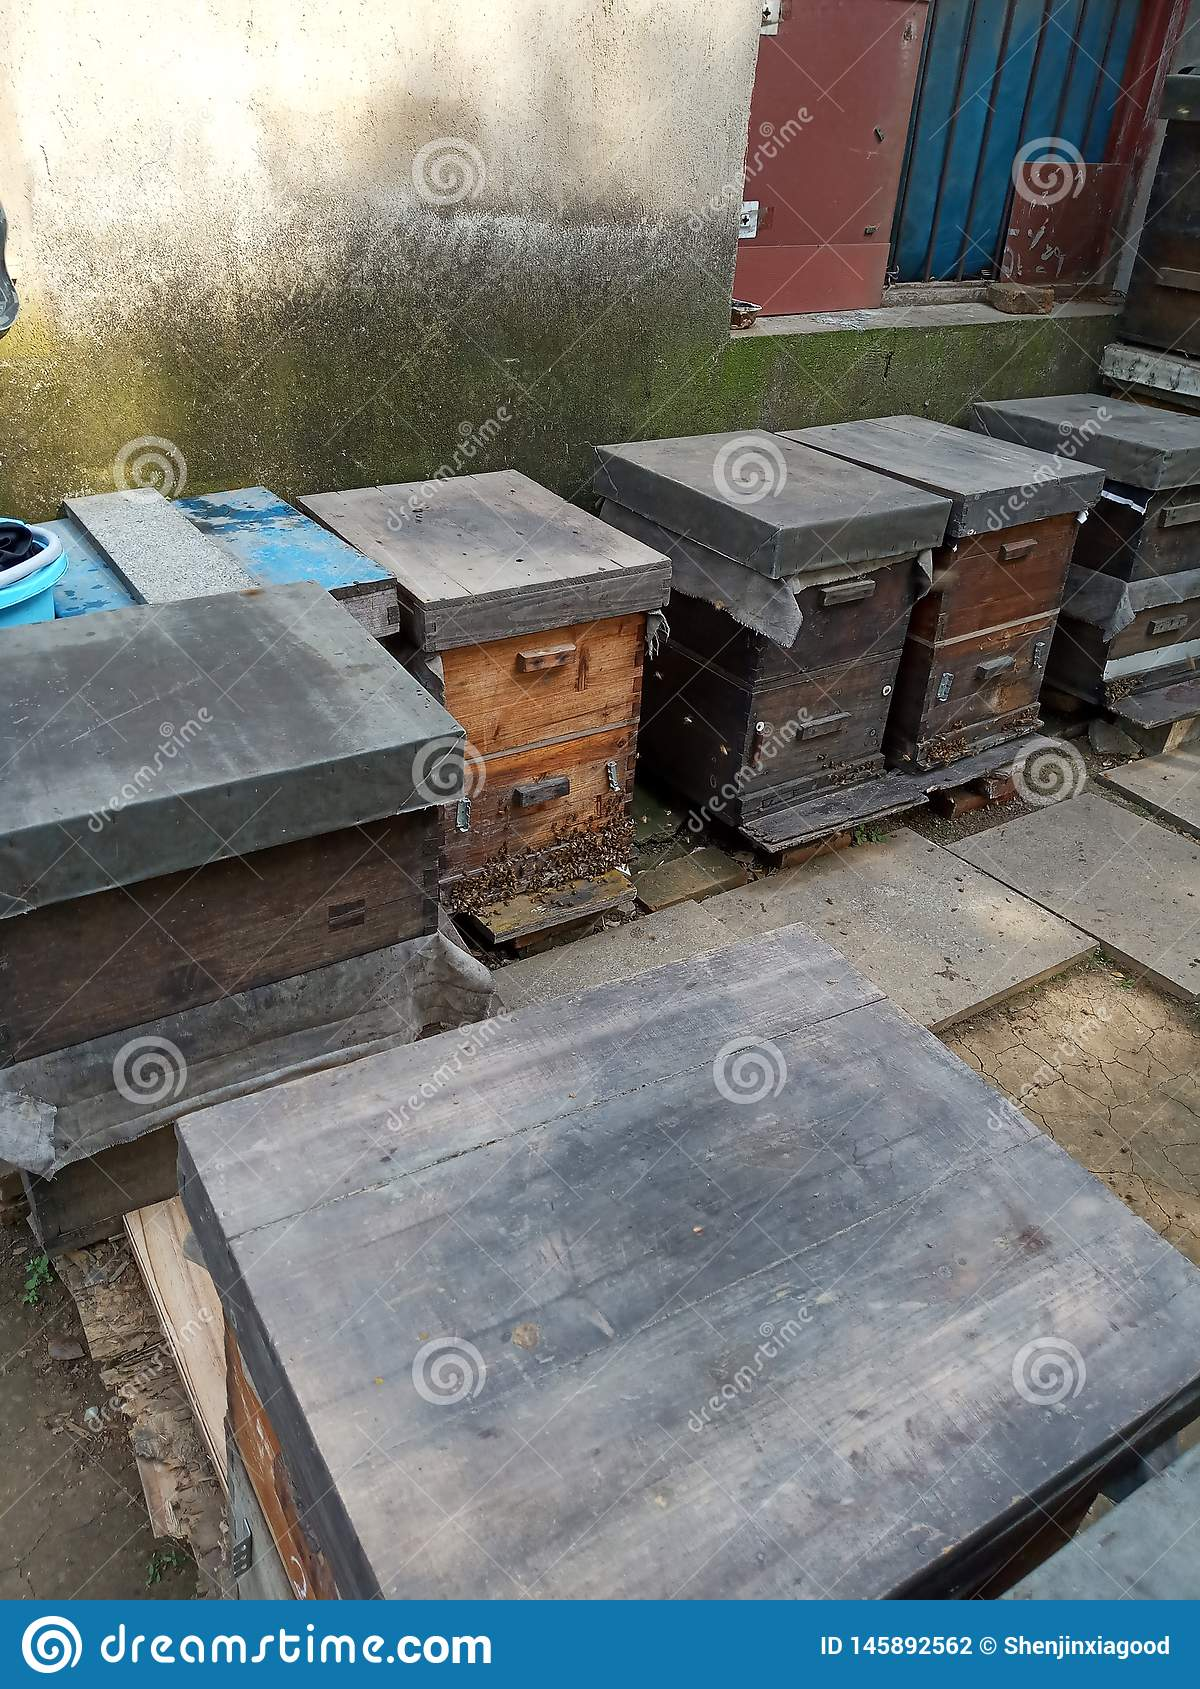 A hive,Wild, farm beekeeping sites